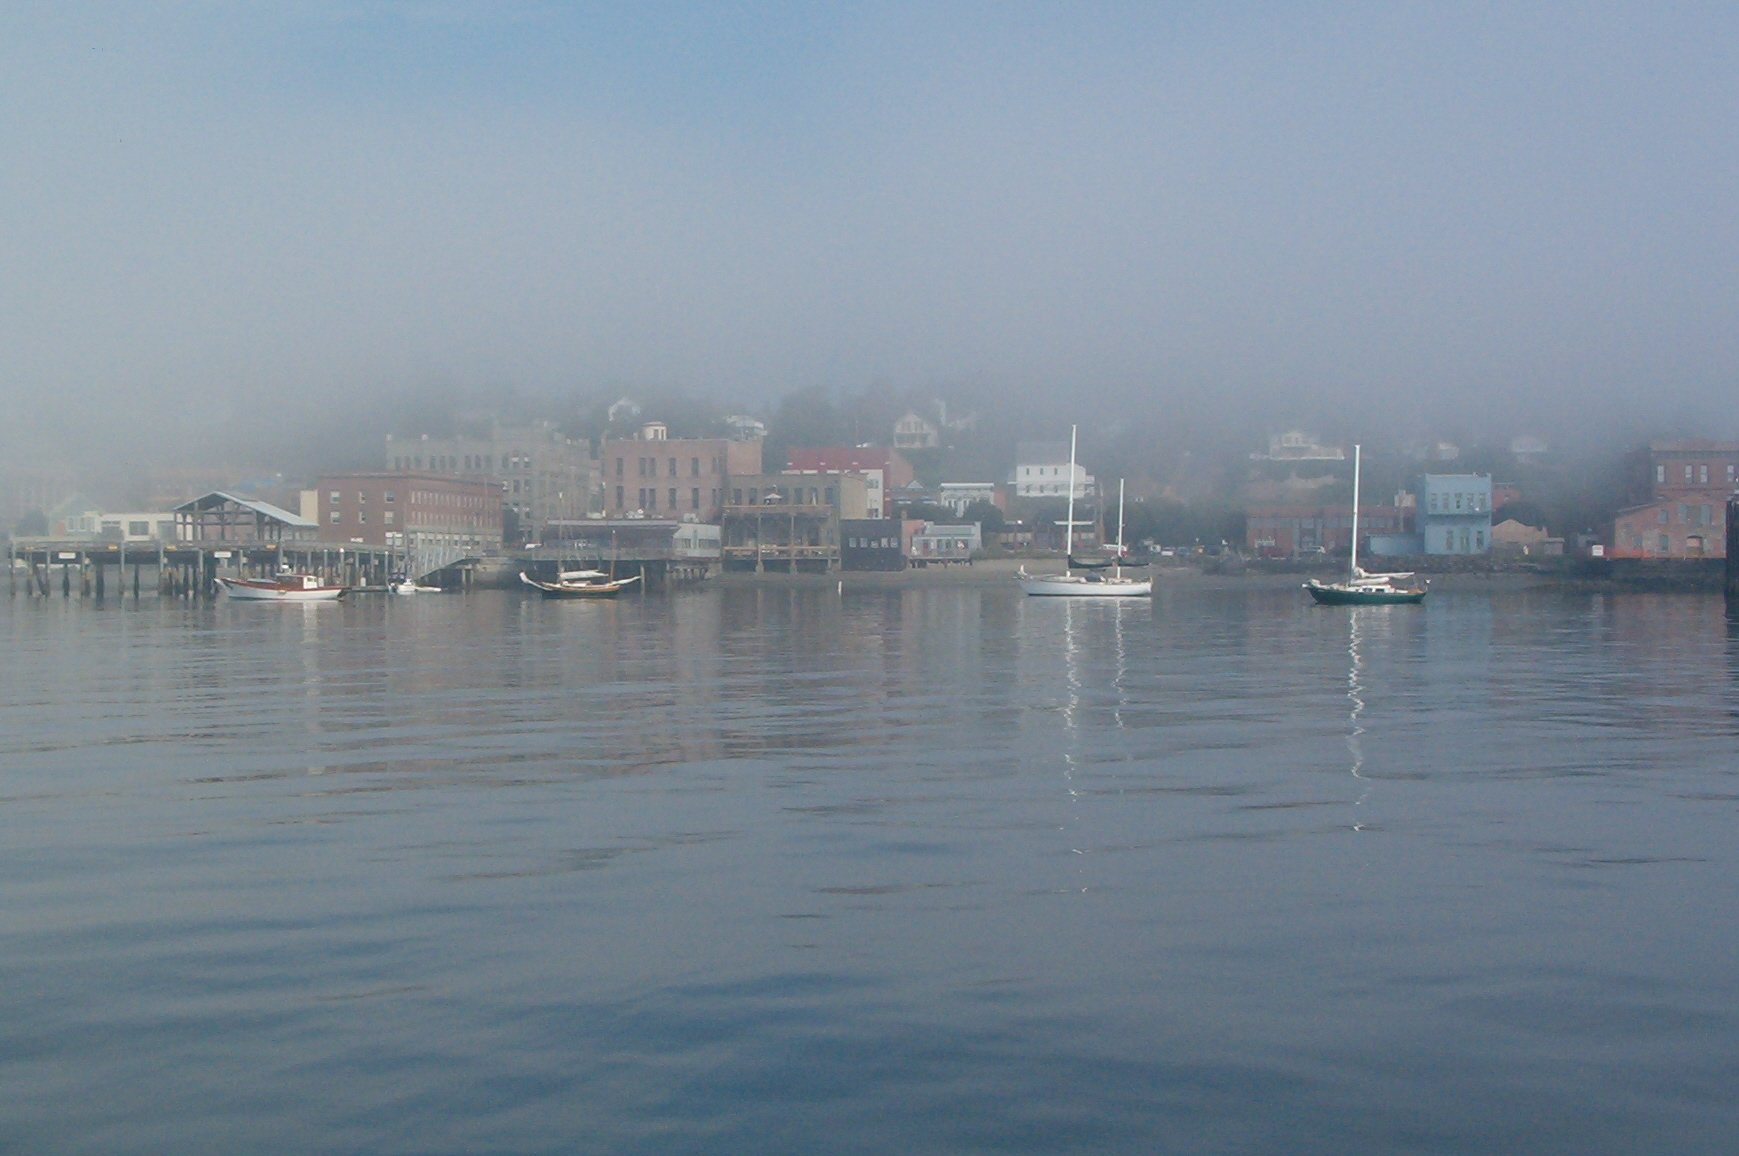 Port Townsend's downtown waterfront in the fog